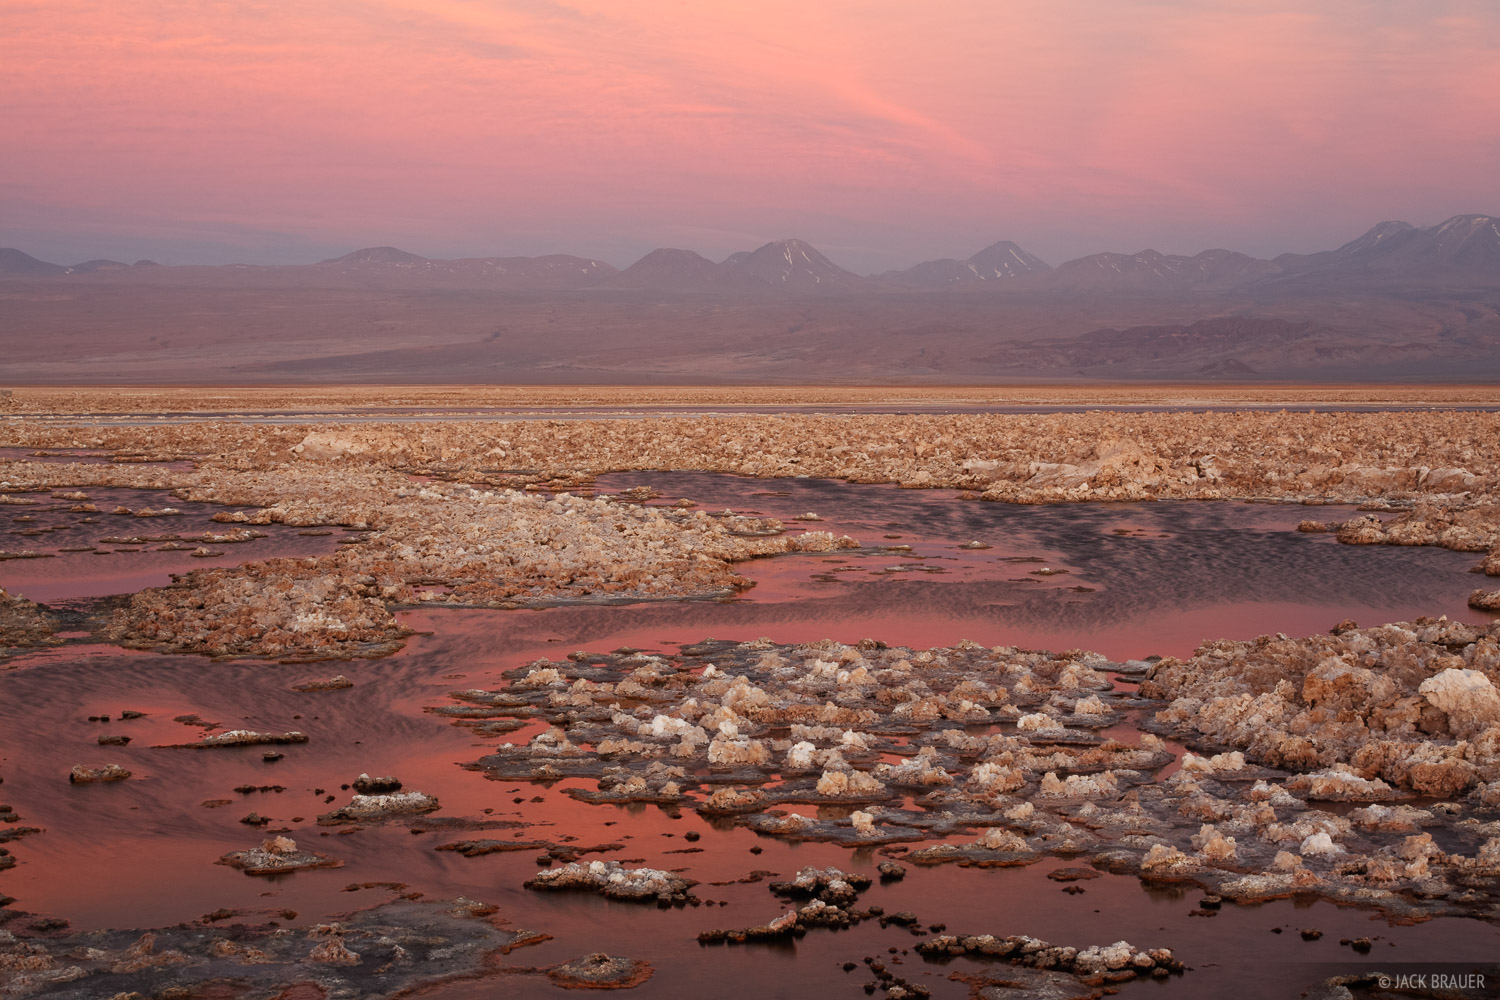 Laguna Chaxa, Salar de Atacama, San Pedro de Atacama, Chile, sunset, photo